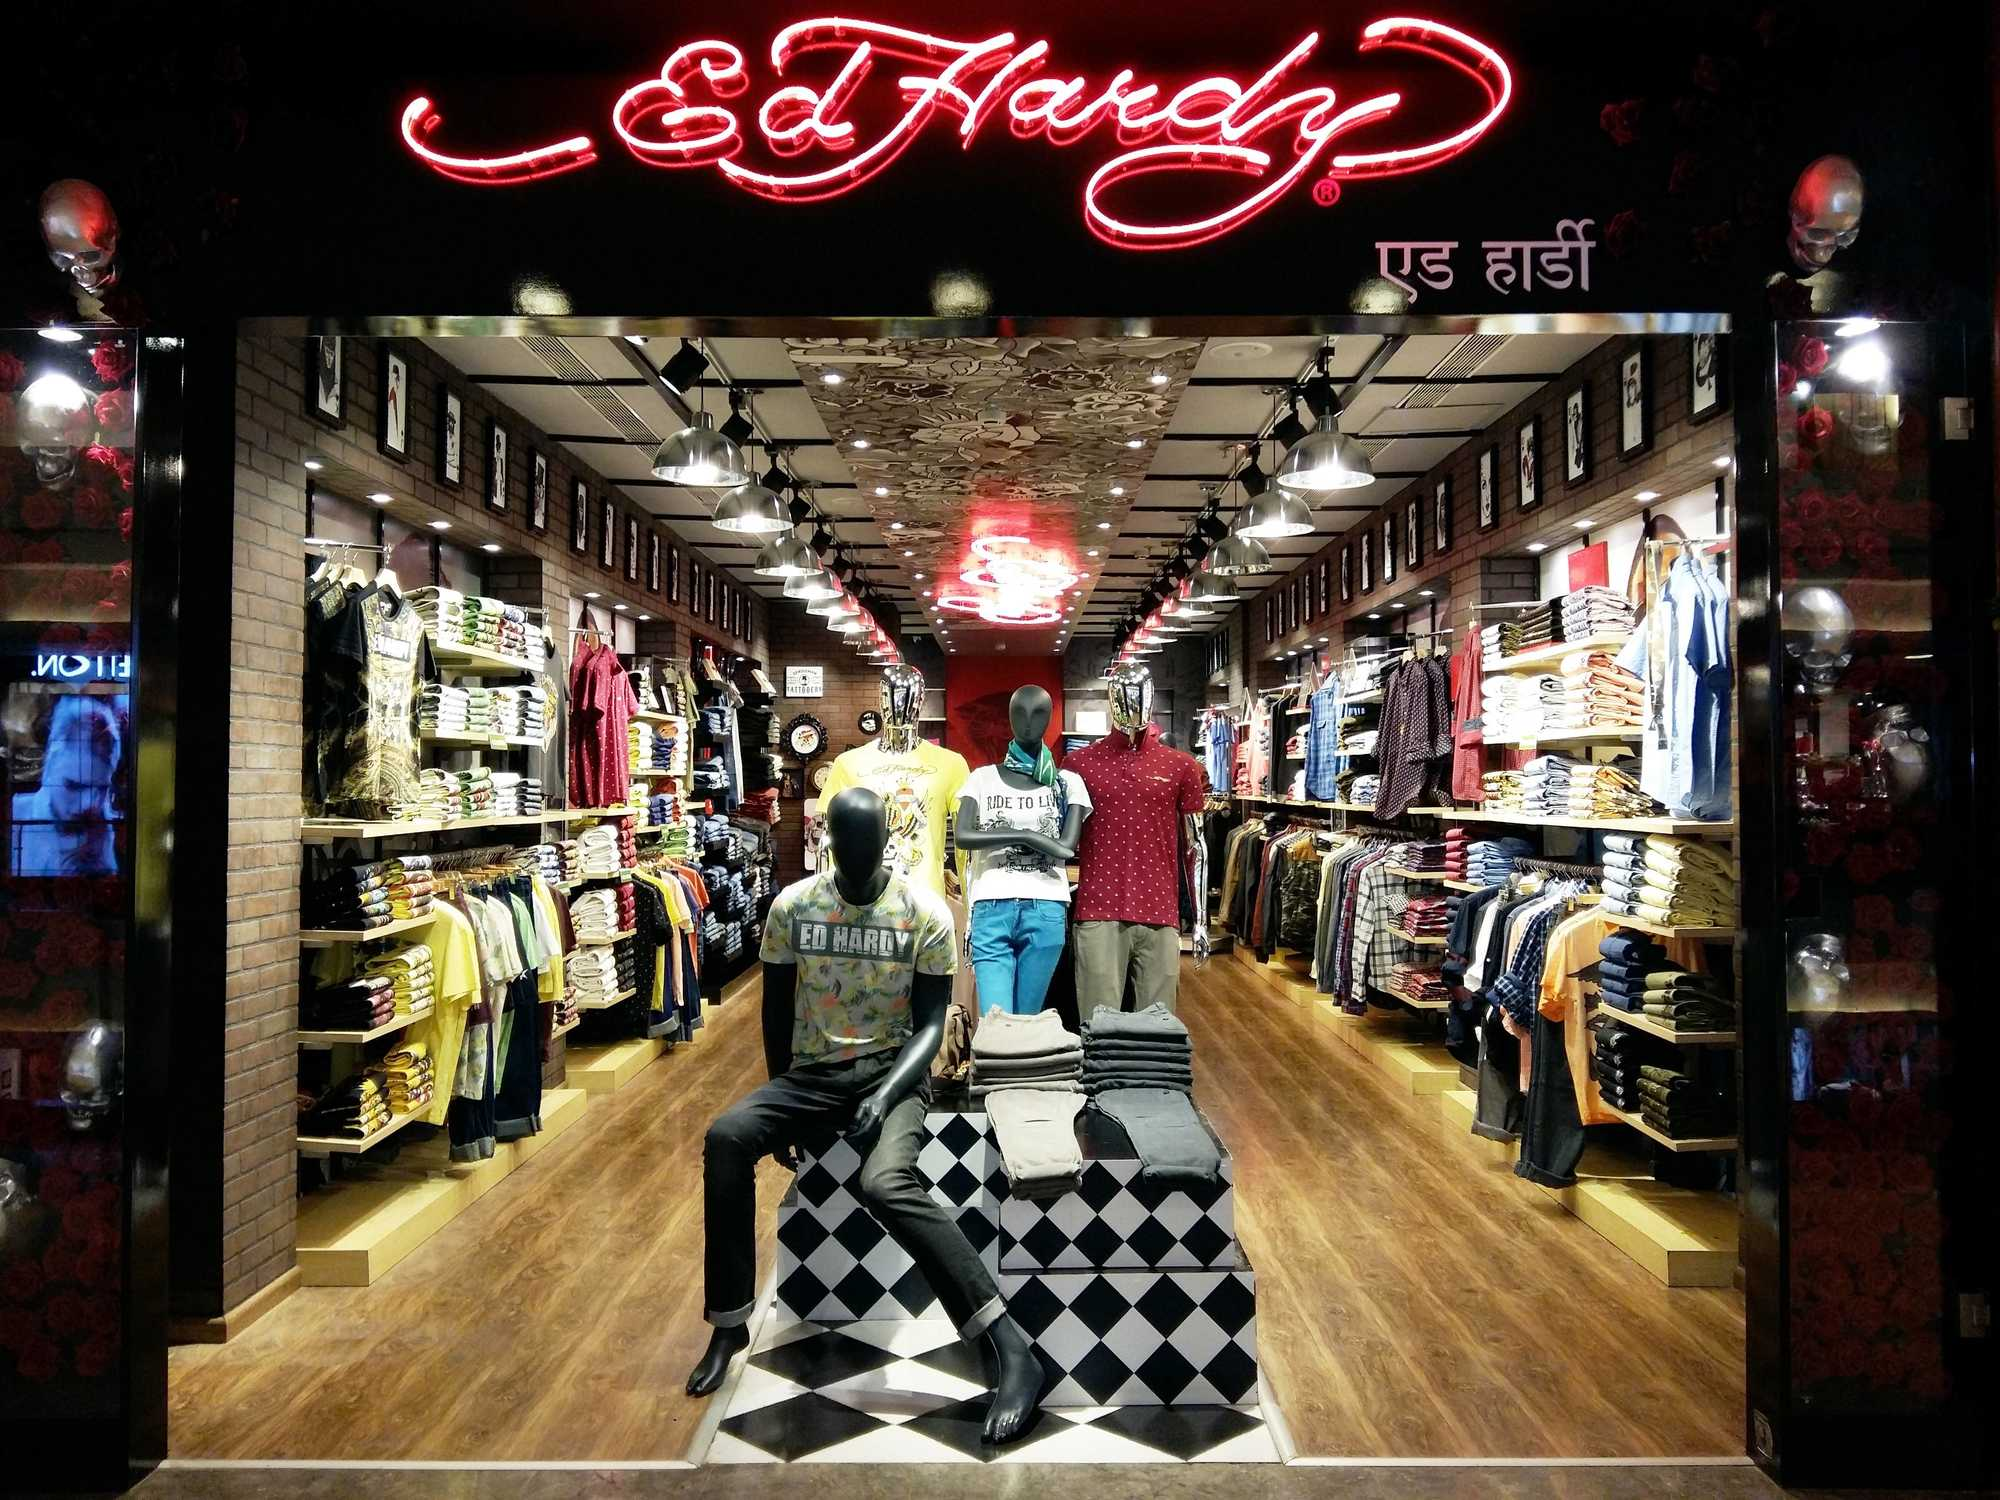 26ed8a67d715af Find list of Ed Hardy in Bandra West - Ed Hardy Stores Mumbai - Justdial